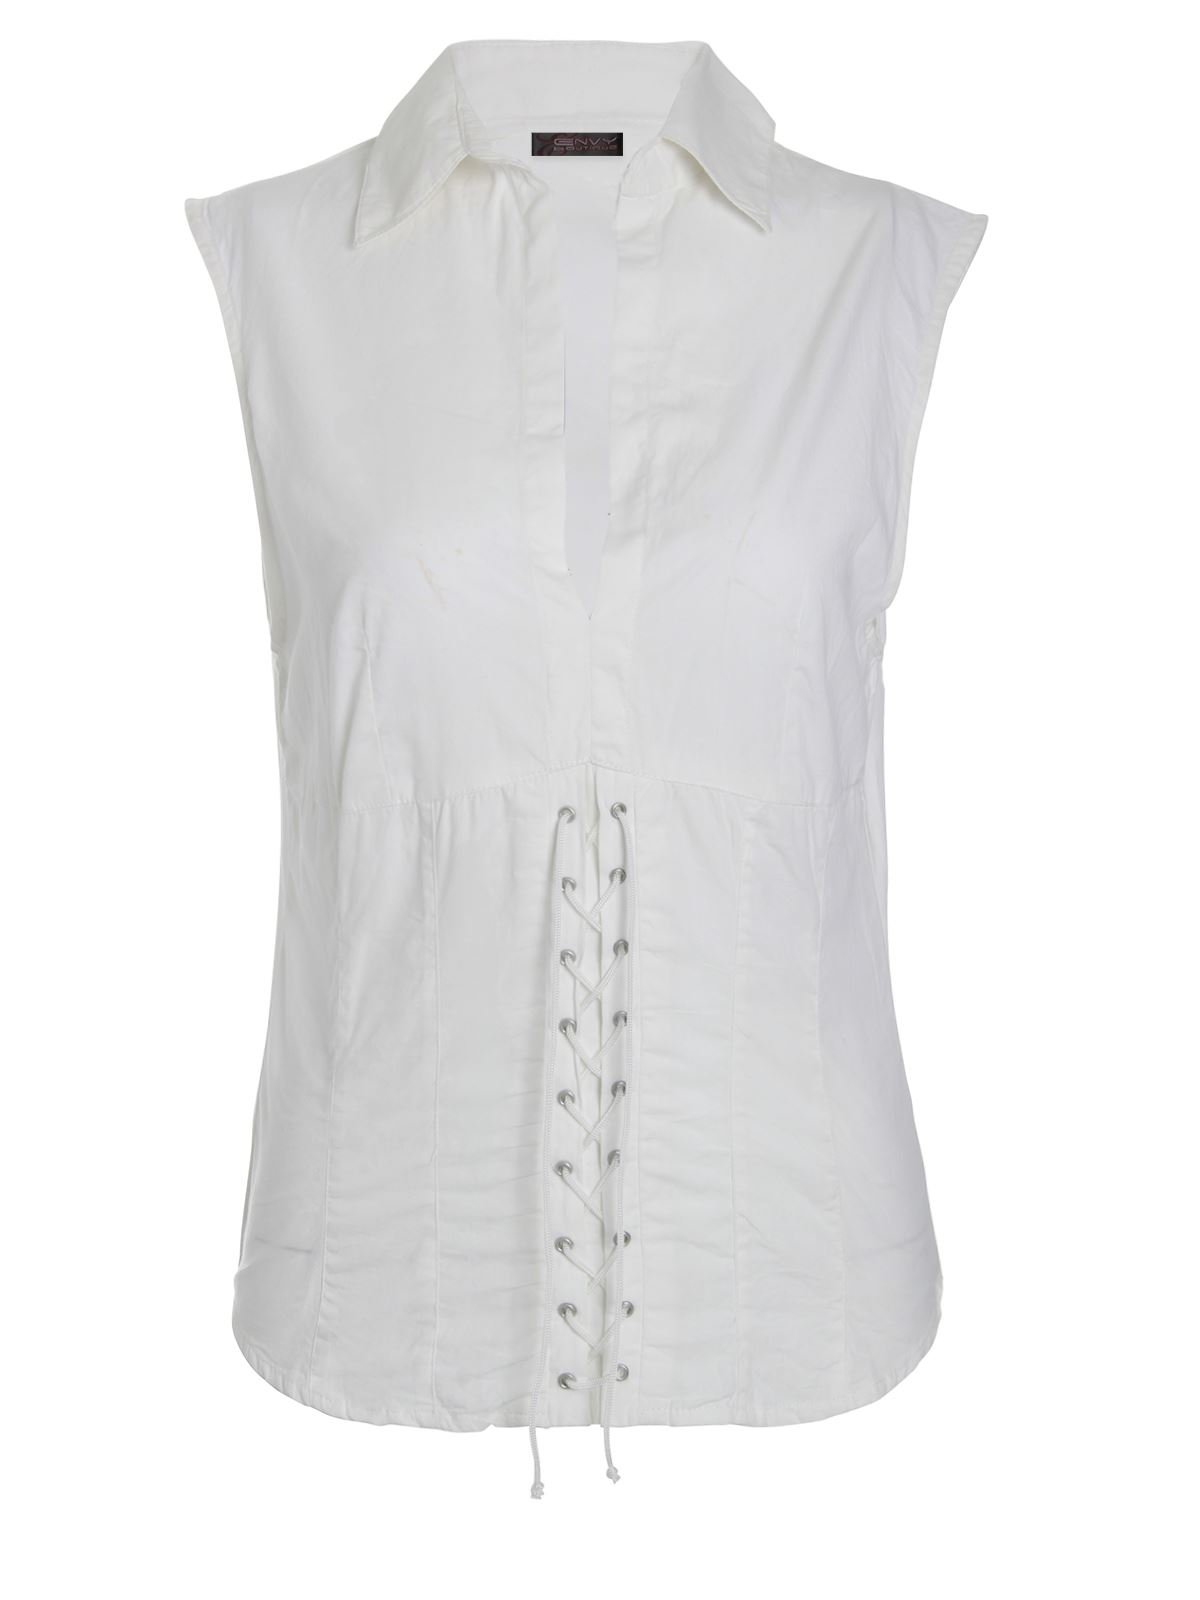 0b755eaa7917c White Sleeveless Blouse Tie